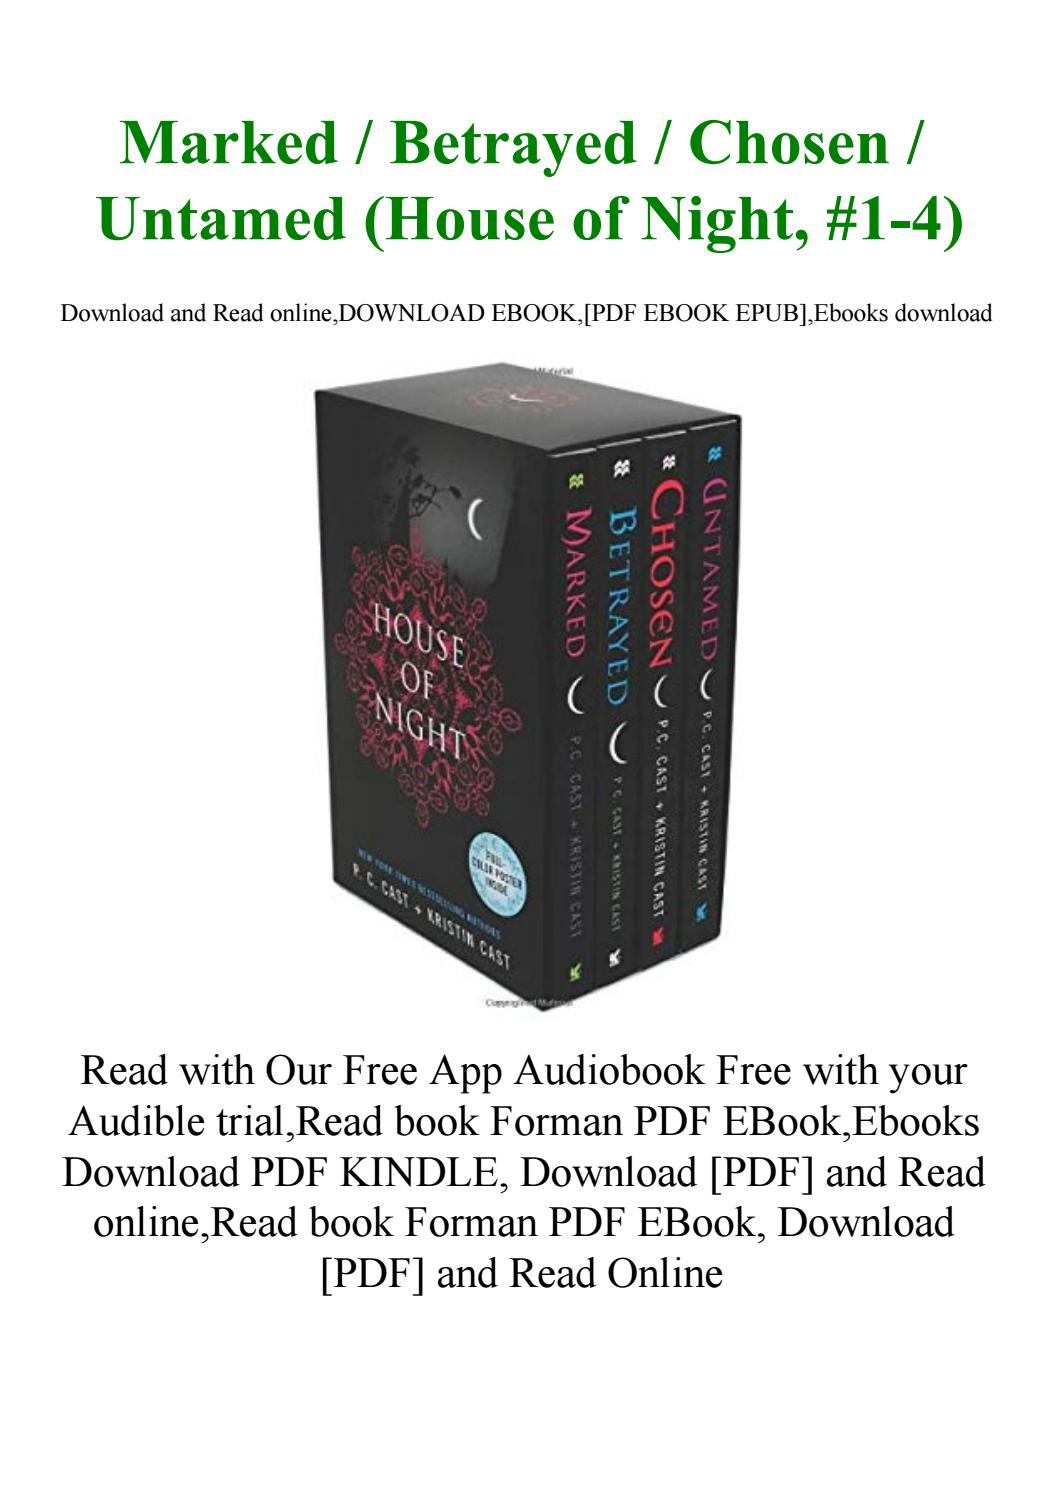 Betrayed (House of Night #2) read online free by P. C. …